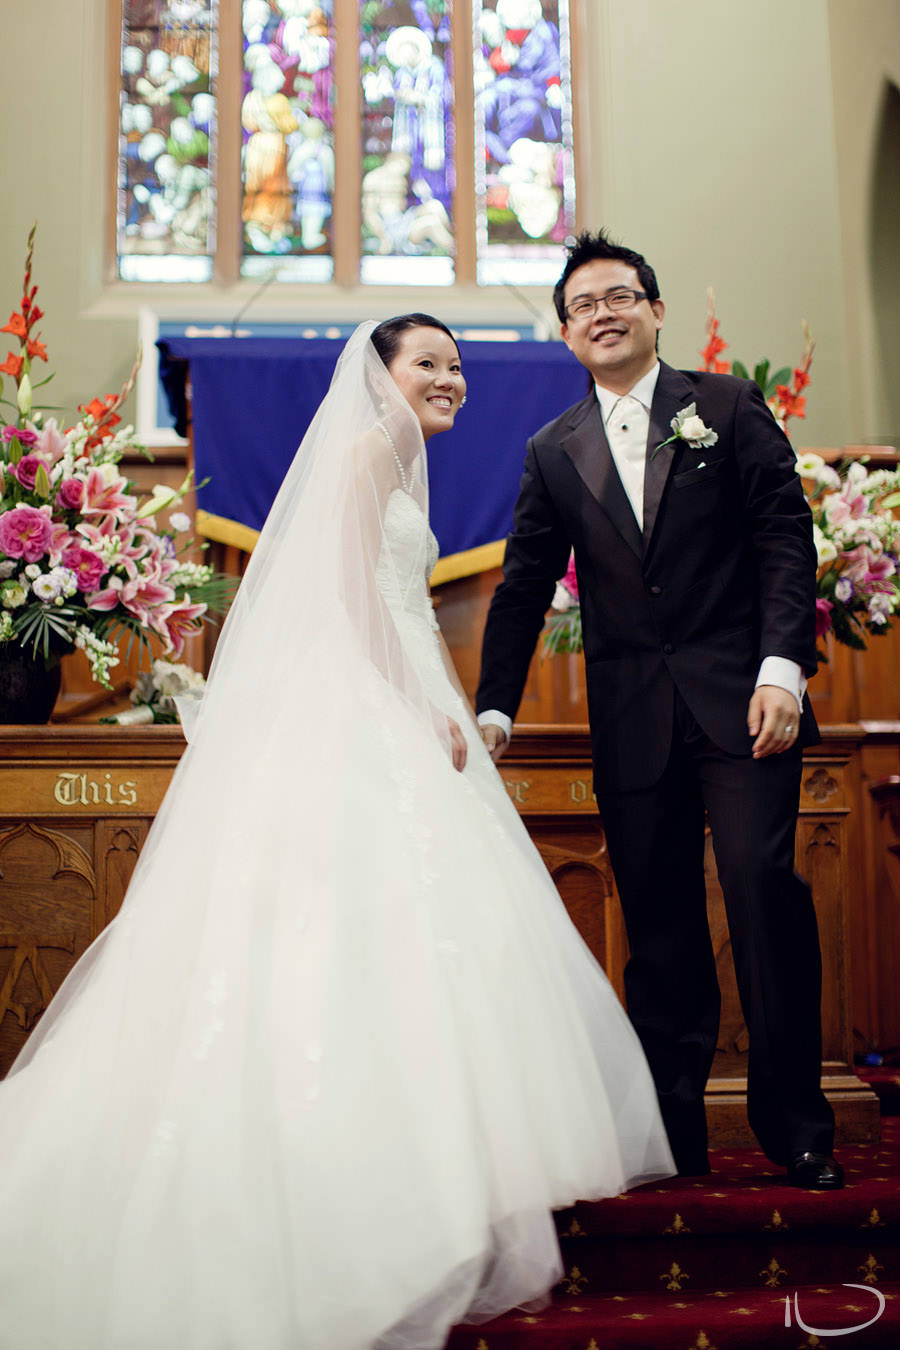 Chinese Presbyterian Church Wedding Photographer: Bride & Groom